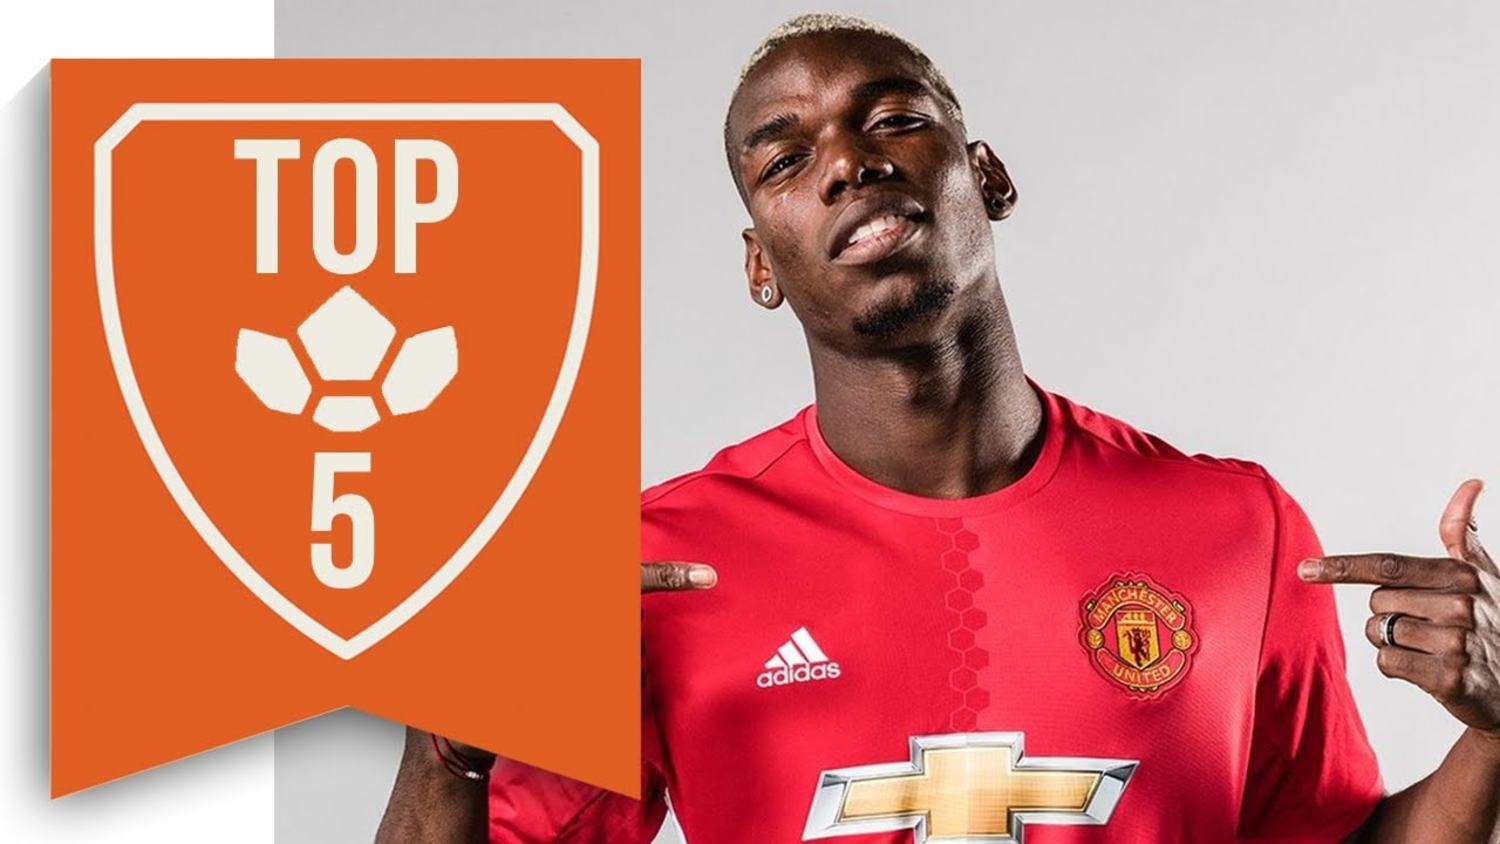 Paul Pogba set for Man United debut | 5 things to look out for this weekend